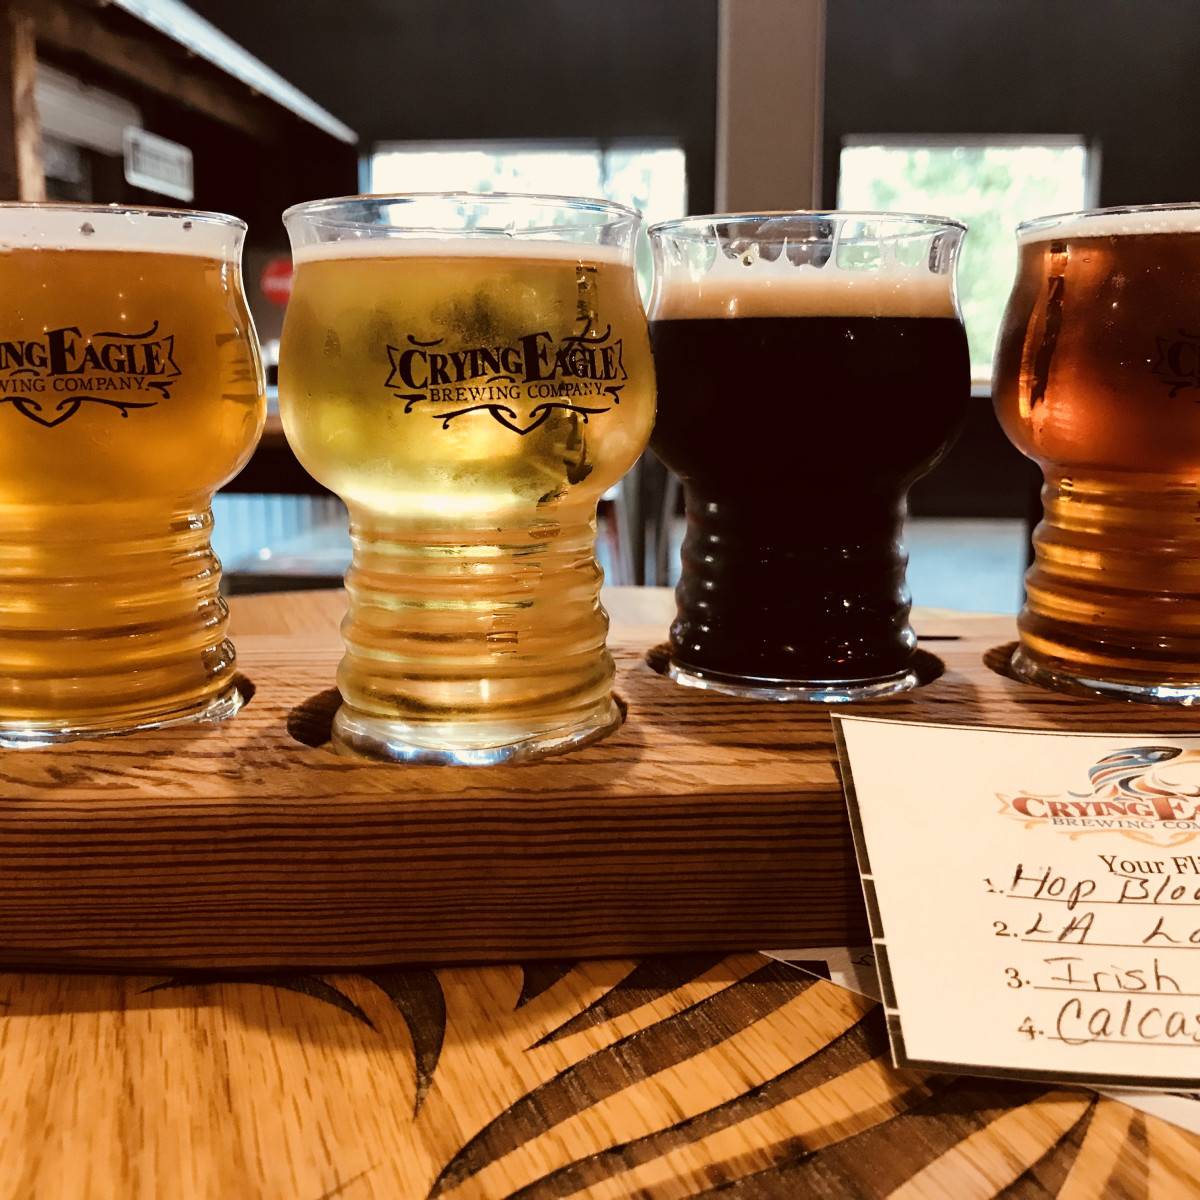 Crying Eagle Brewing Co. in Lake Charles, Louisiana